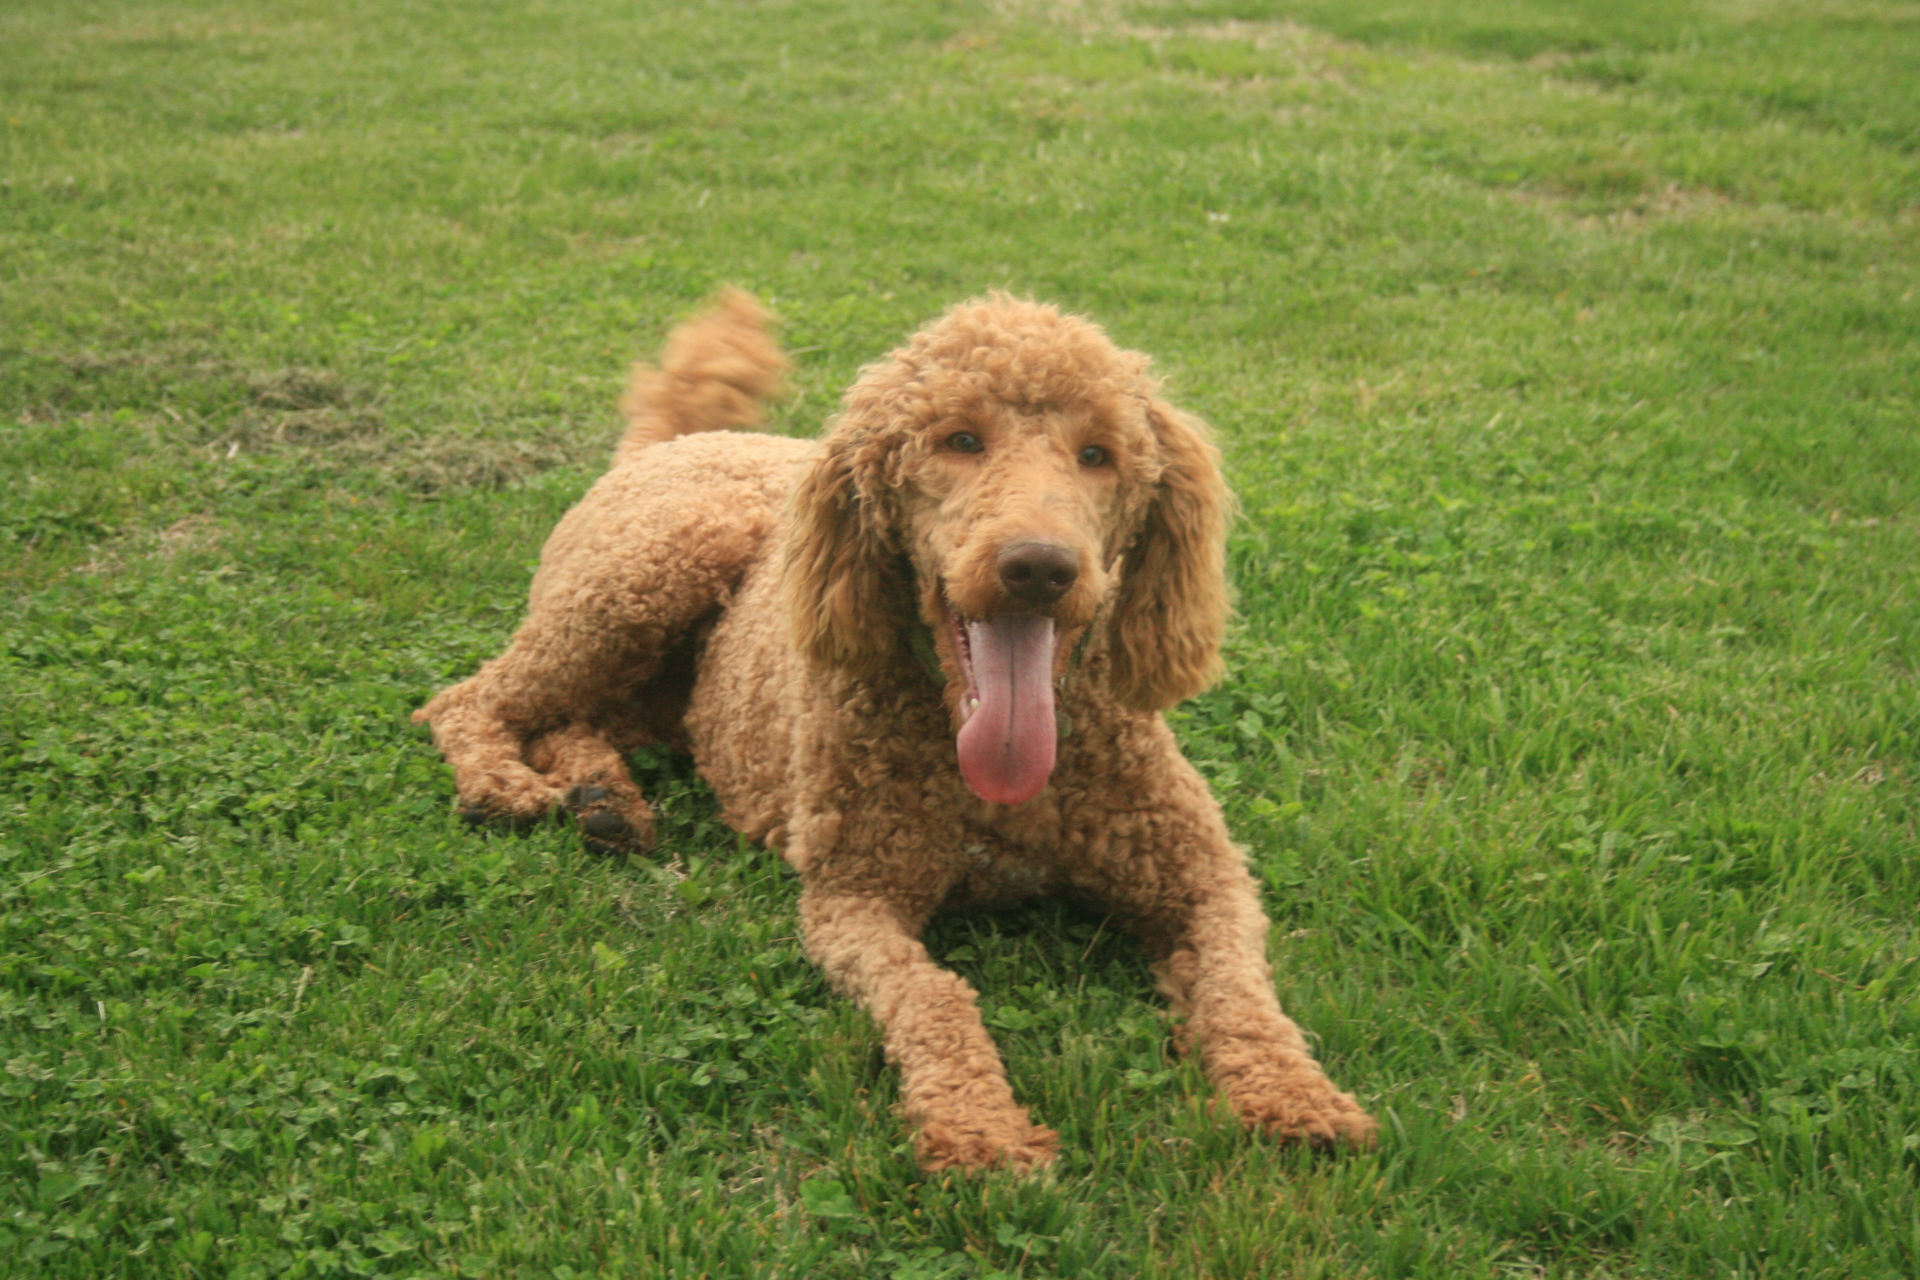 Why a Goldendoodle?